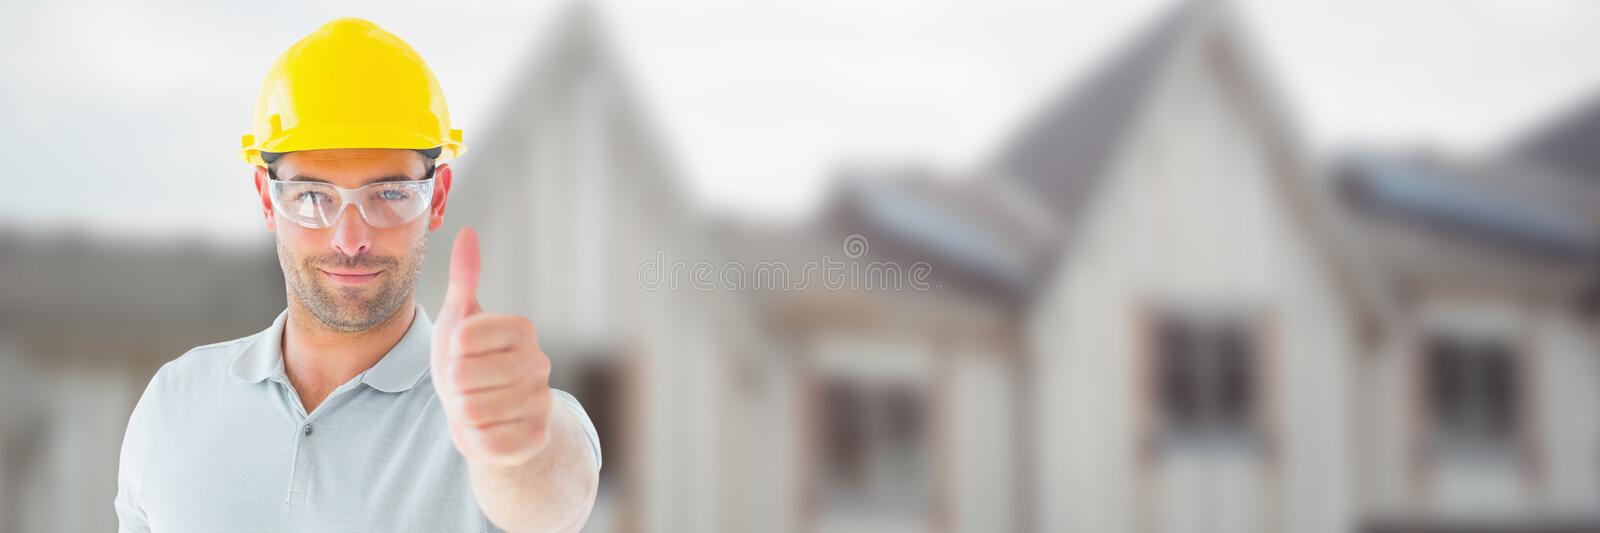 Construction Worker on building site giving thumbs up royalty free stock images